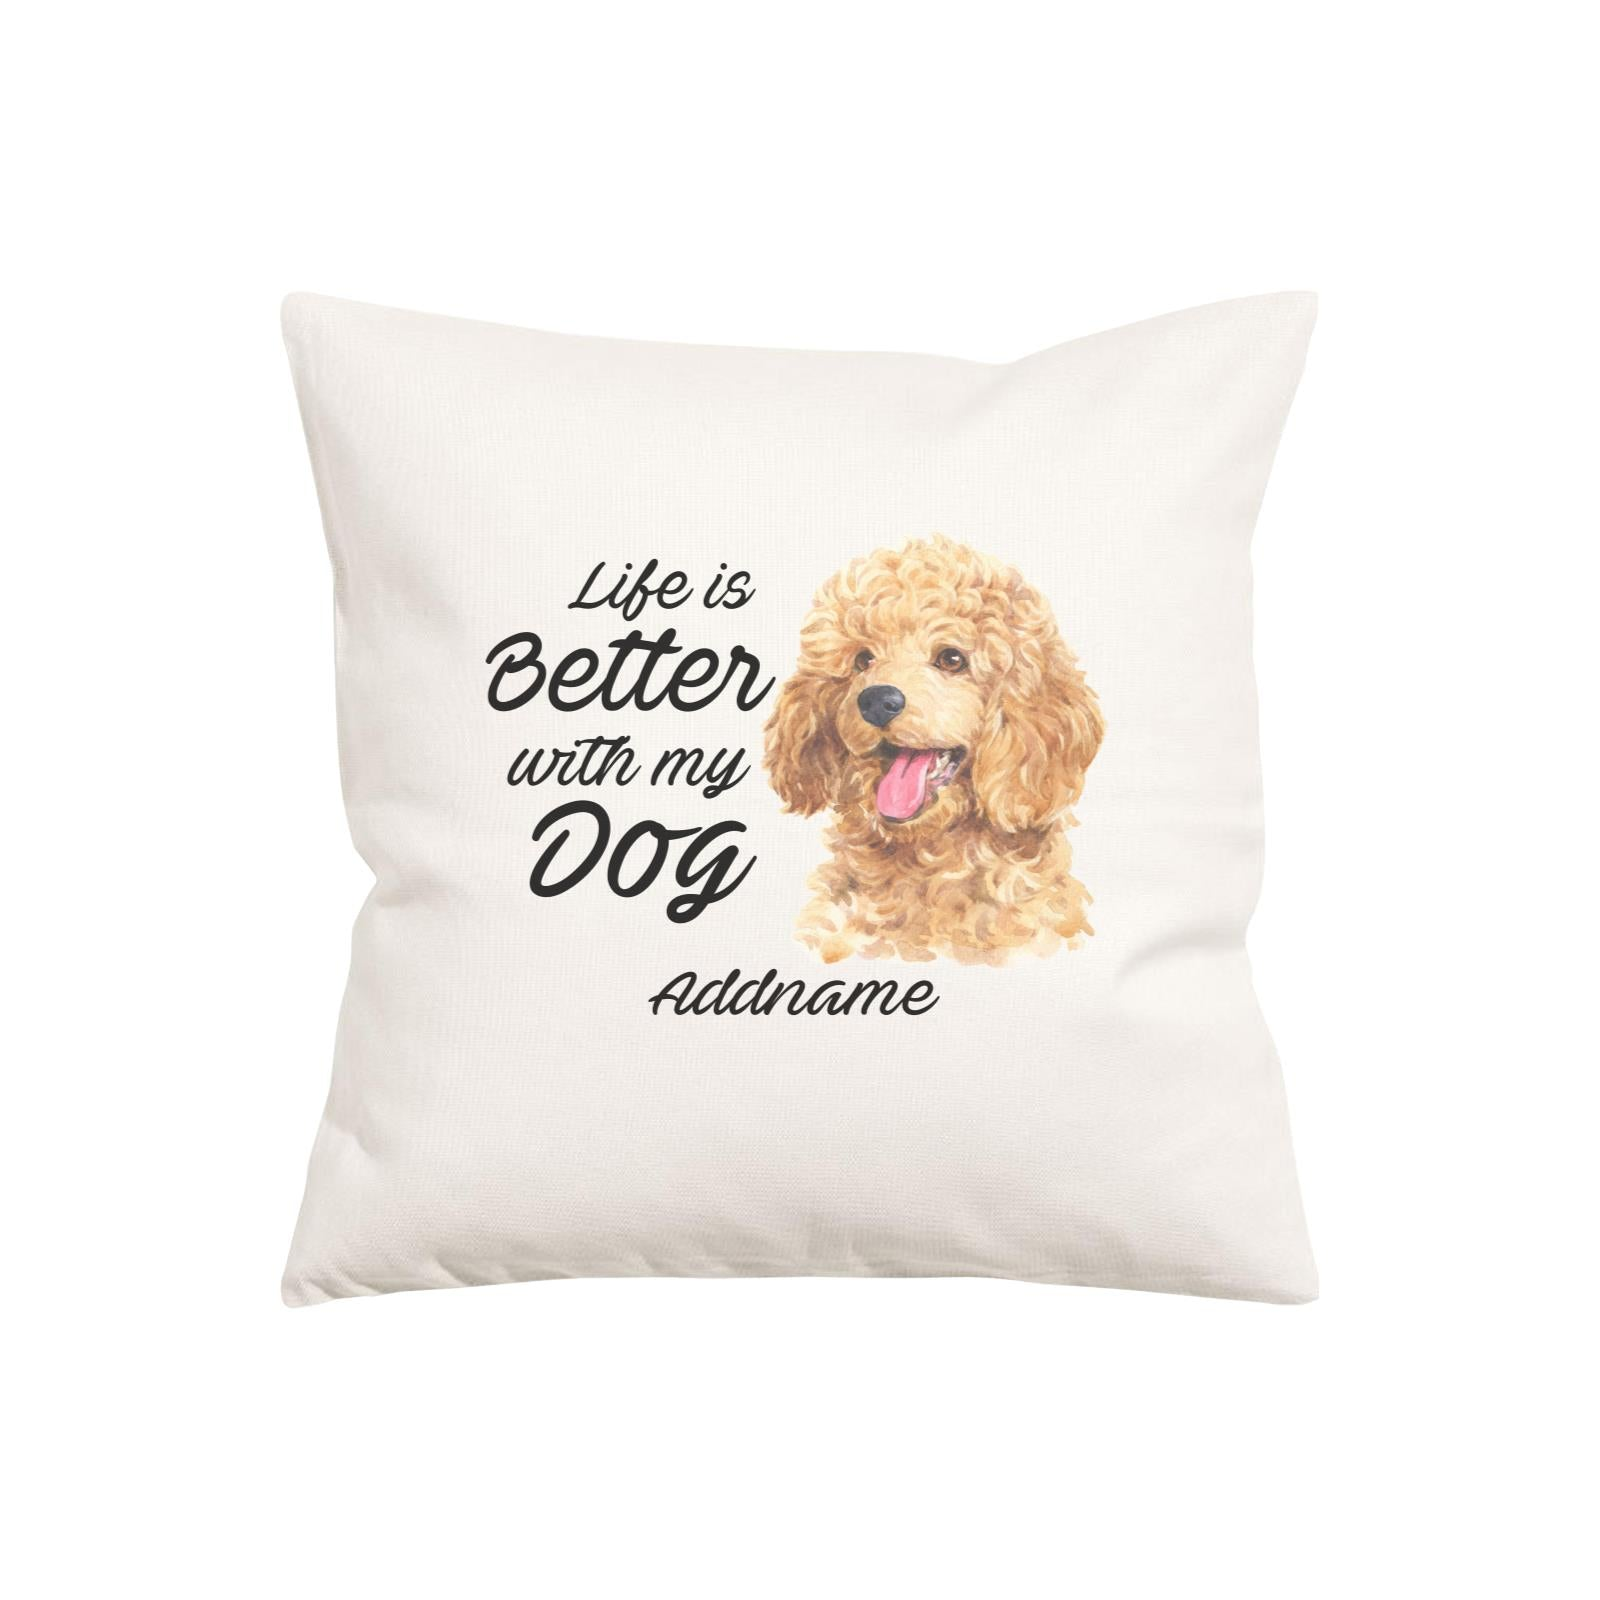 Watercolor Life is Better With My Dog Poodle Gold Addname Pillow Cushion